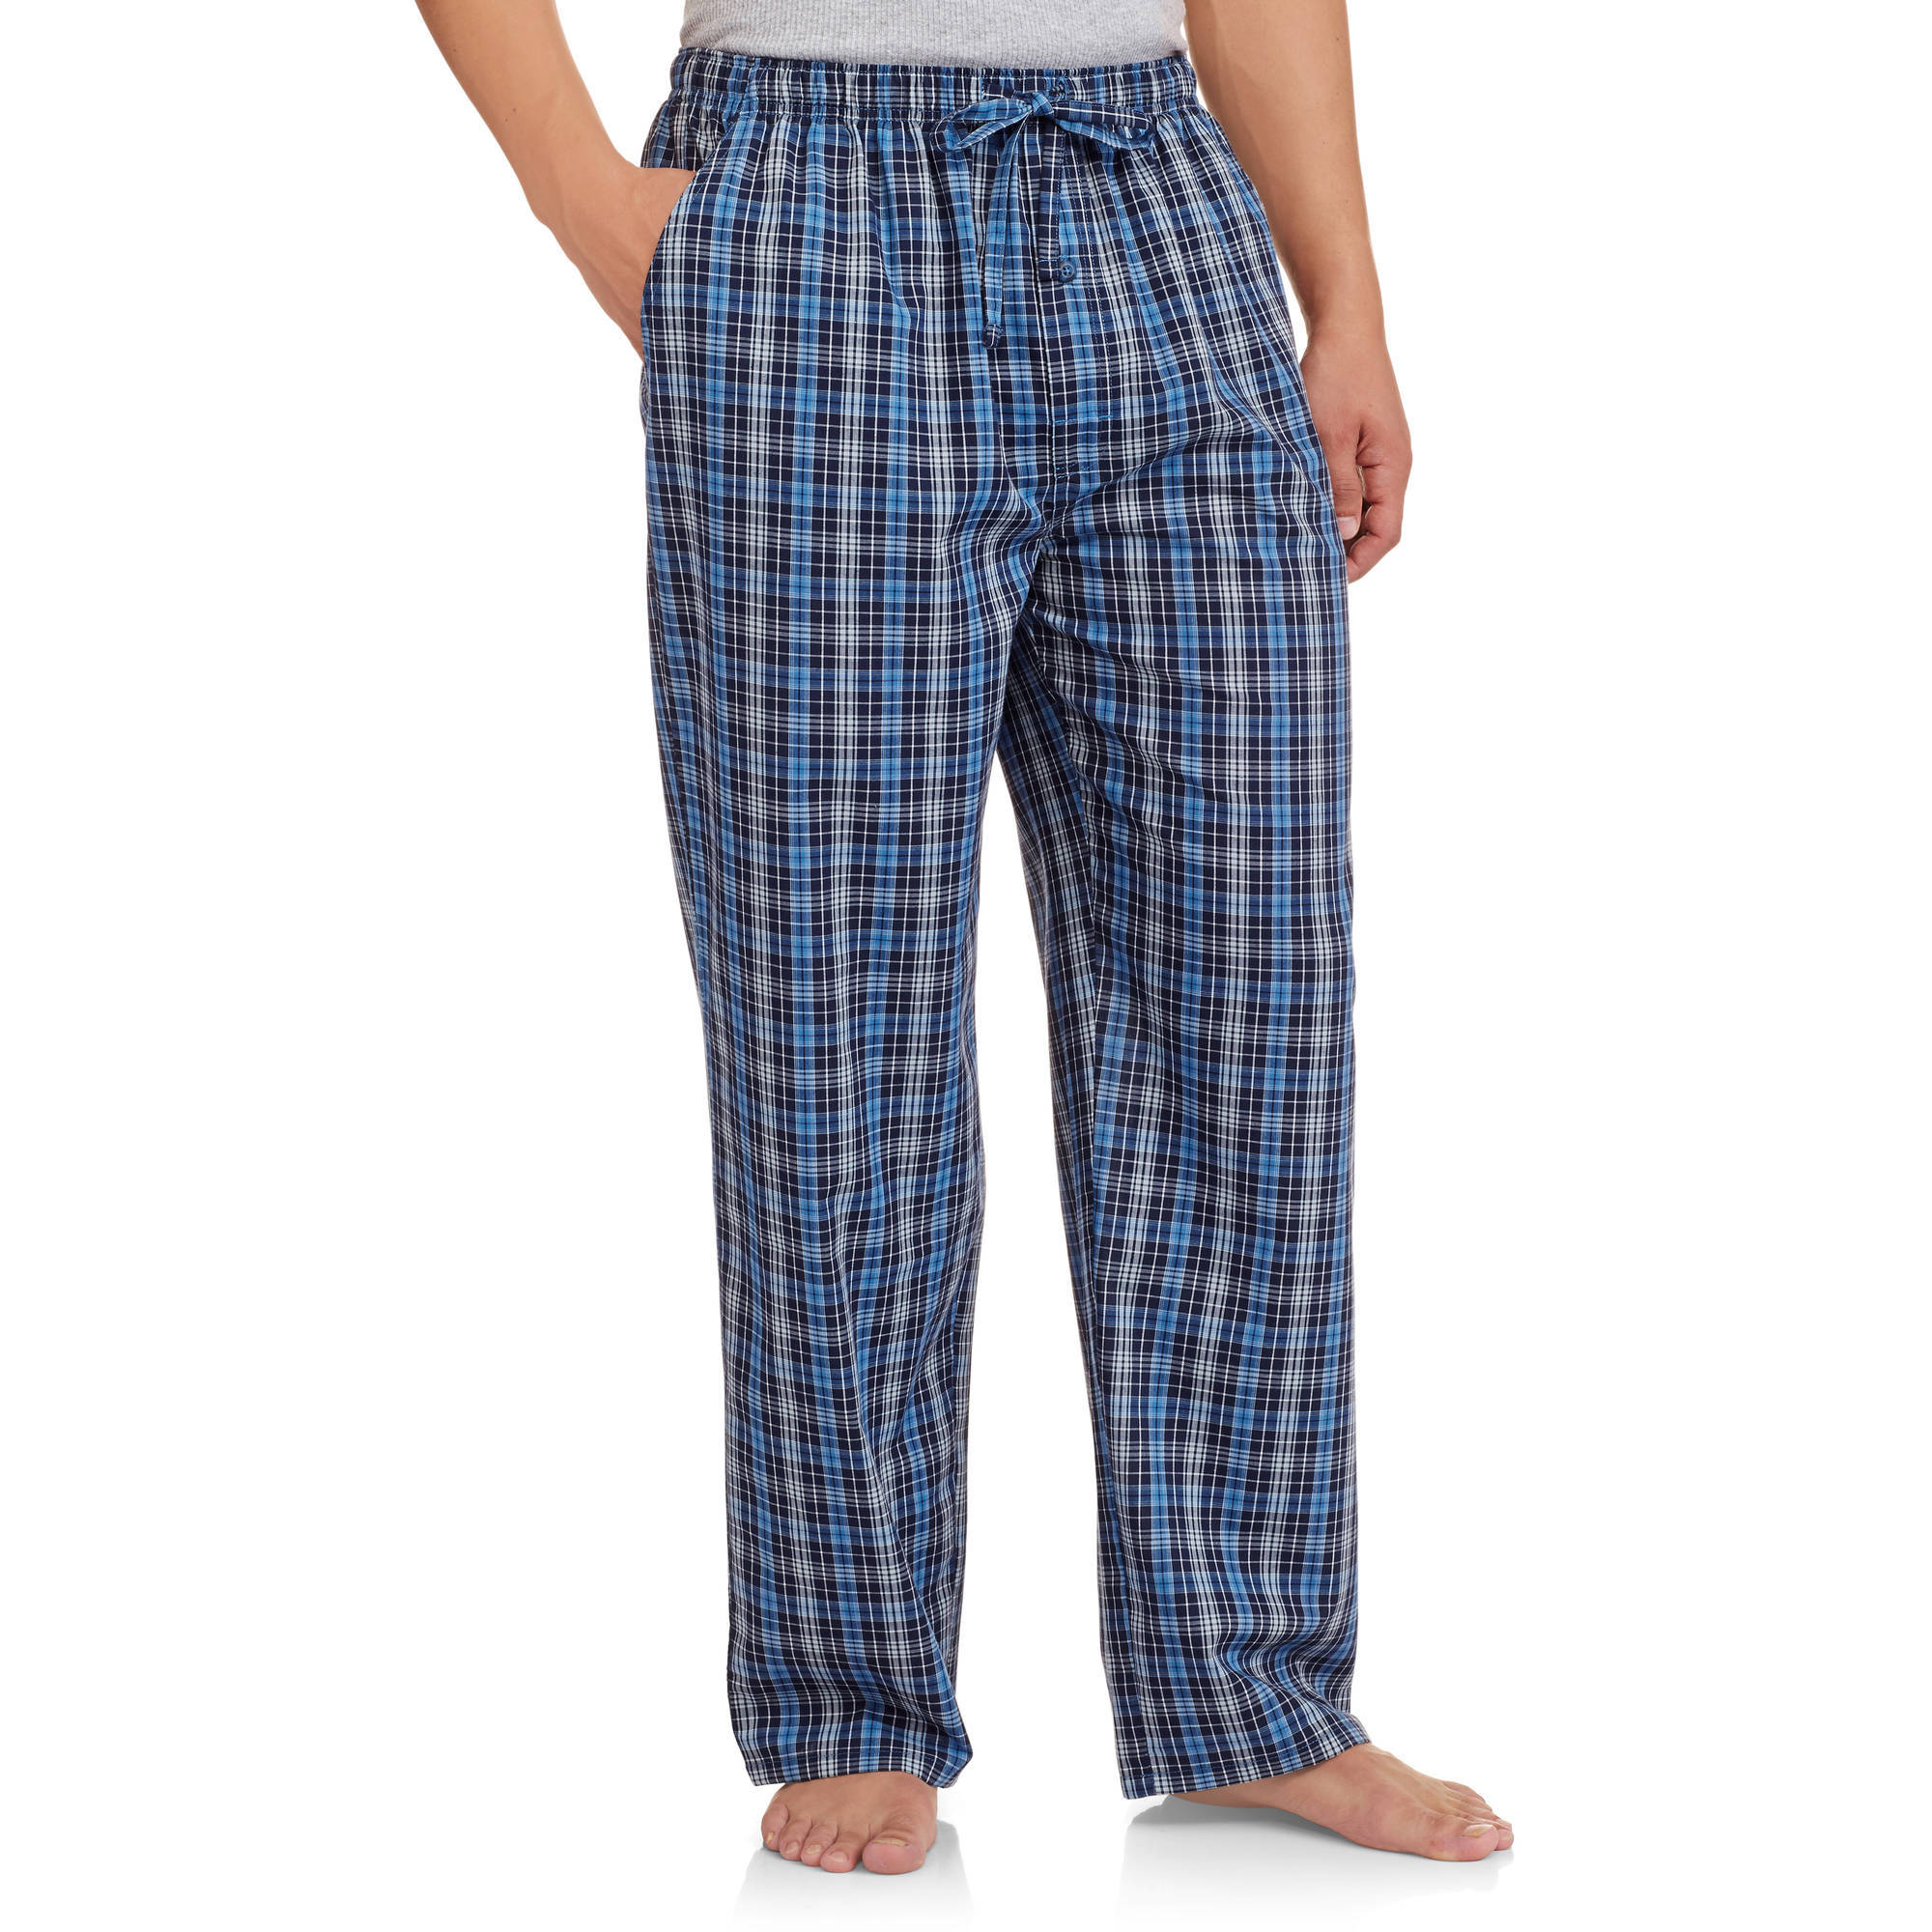 Fruit of the Loom Men's Woven Sleep Pant